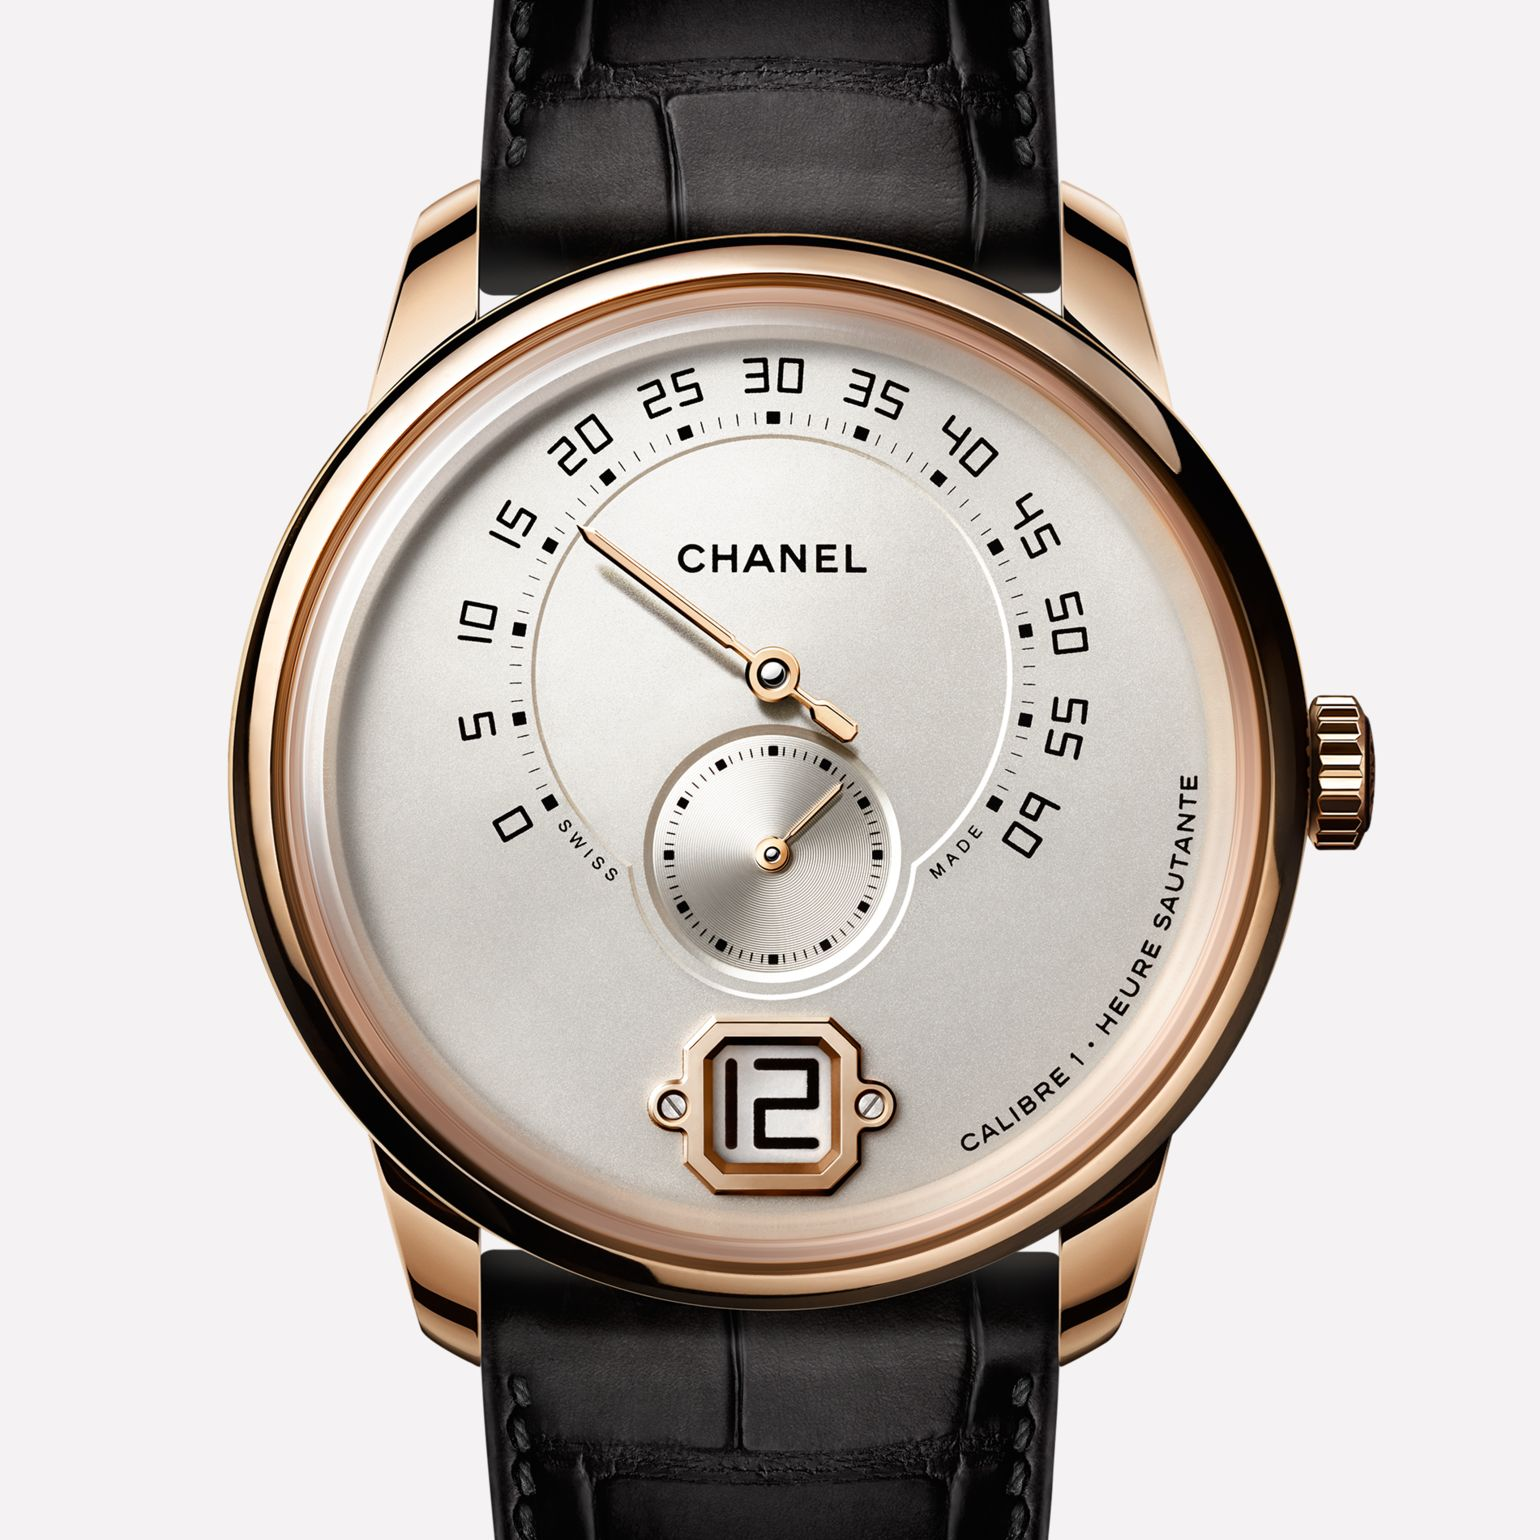 Monsieur Watch BEIGE GOLD, ivory dial with jumping hour, a retrograde minute indication at 240°, and small second counter